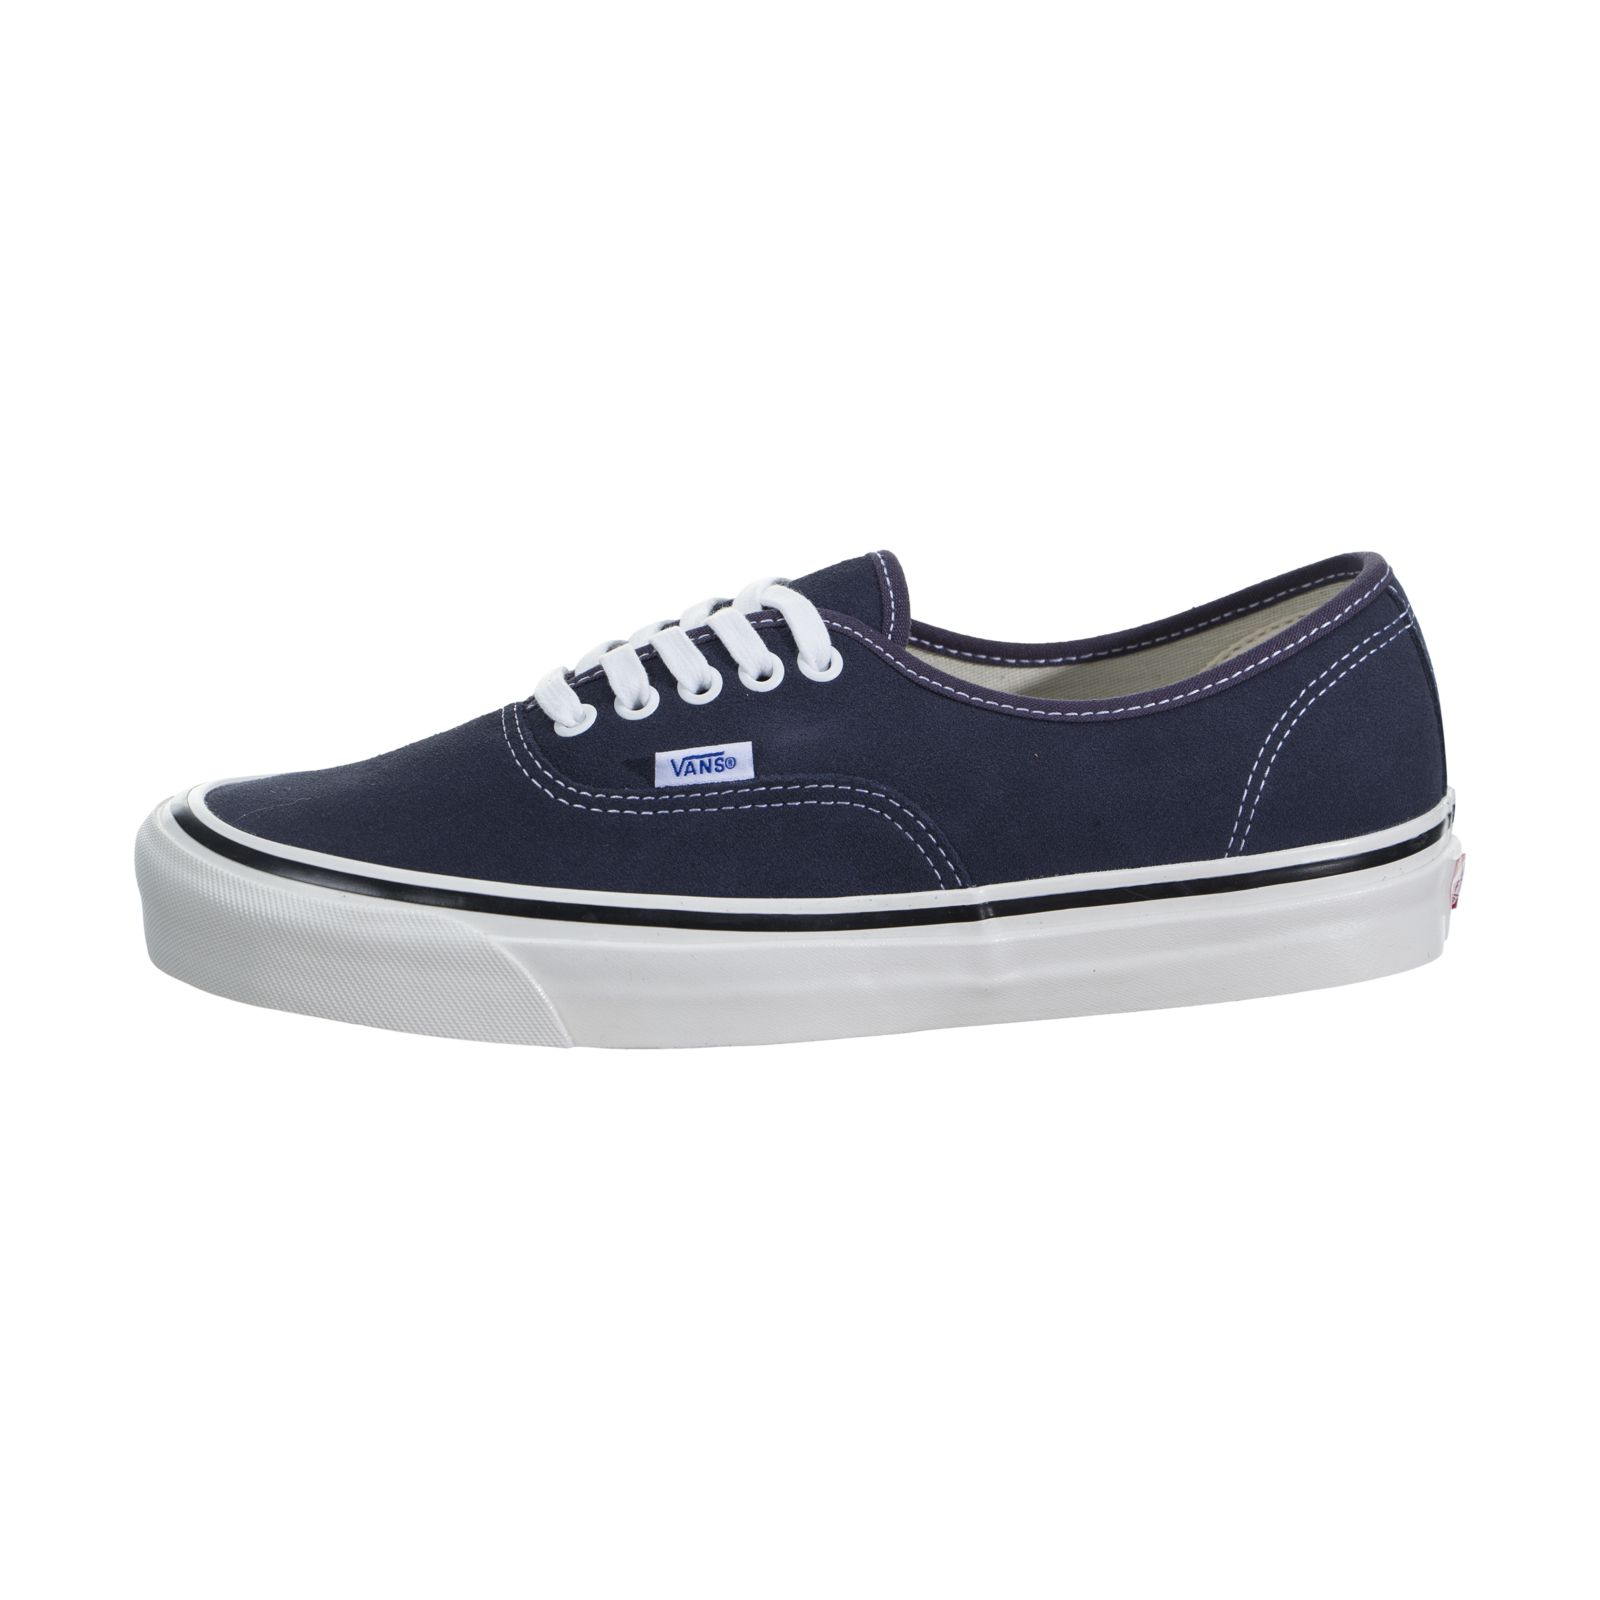 436c7e9ea3d876 Vans Authentic 44 DX (Anaheim Factory) vn0a38enqsx 1 of 5FREE Shipping ...